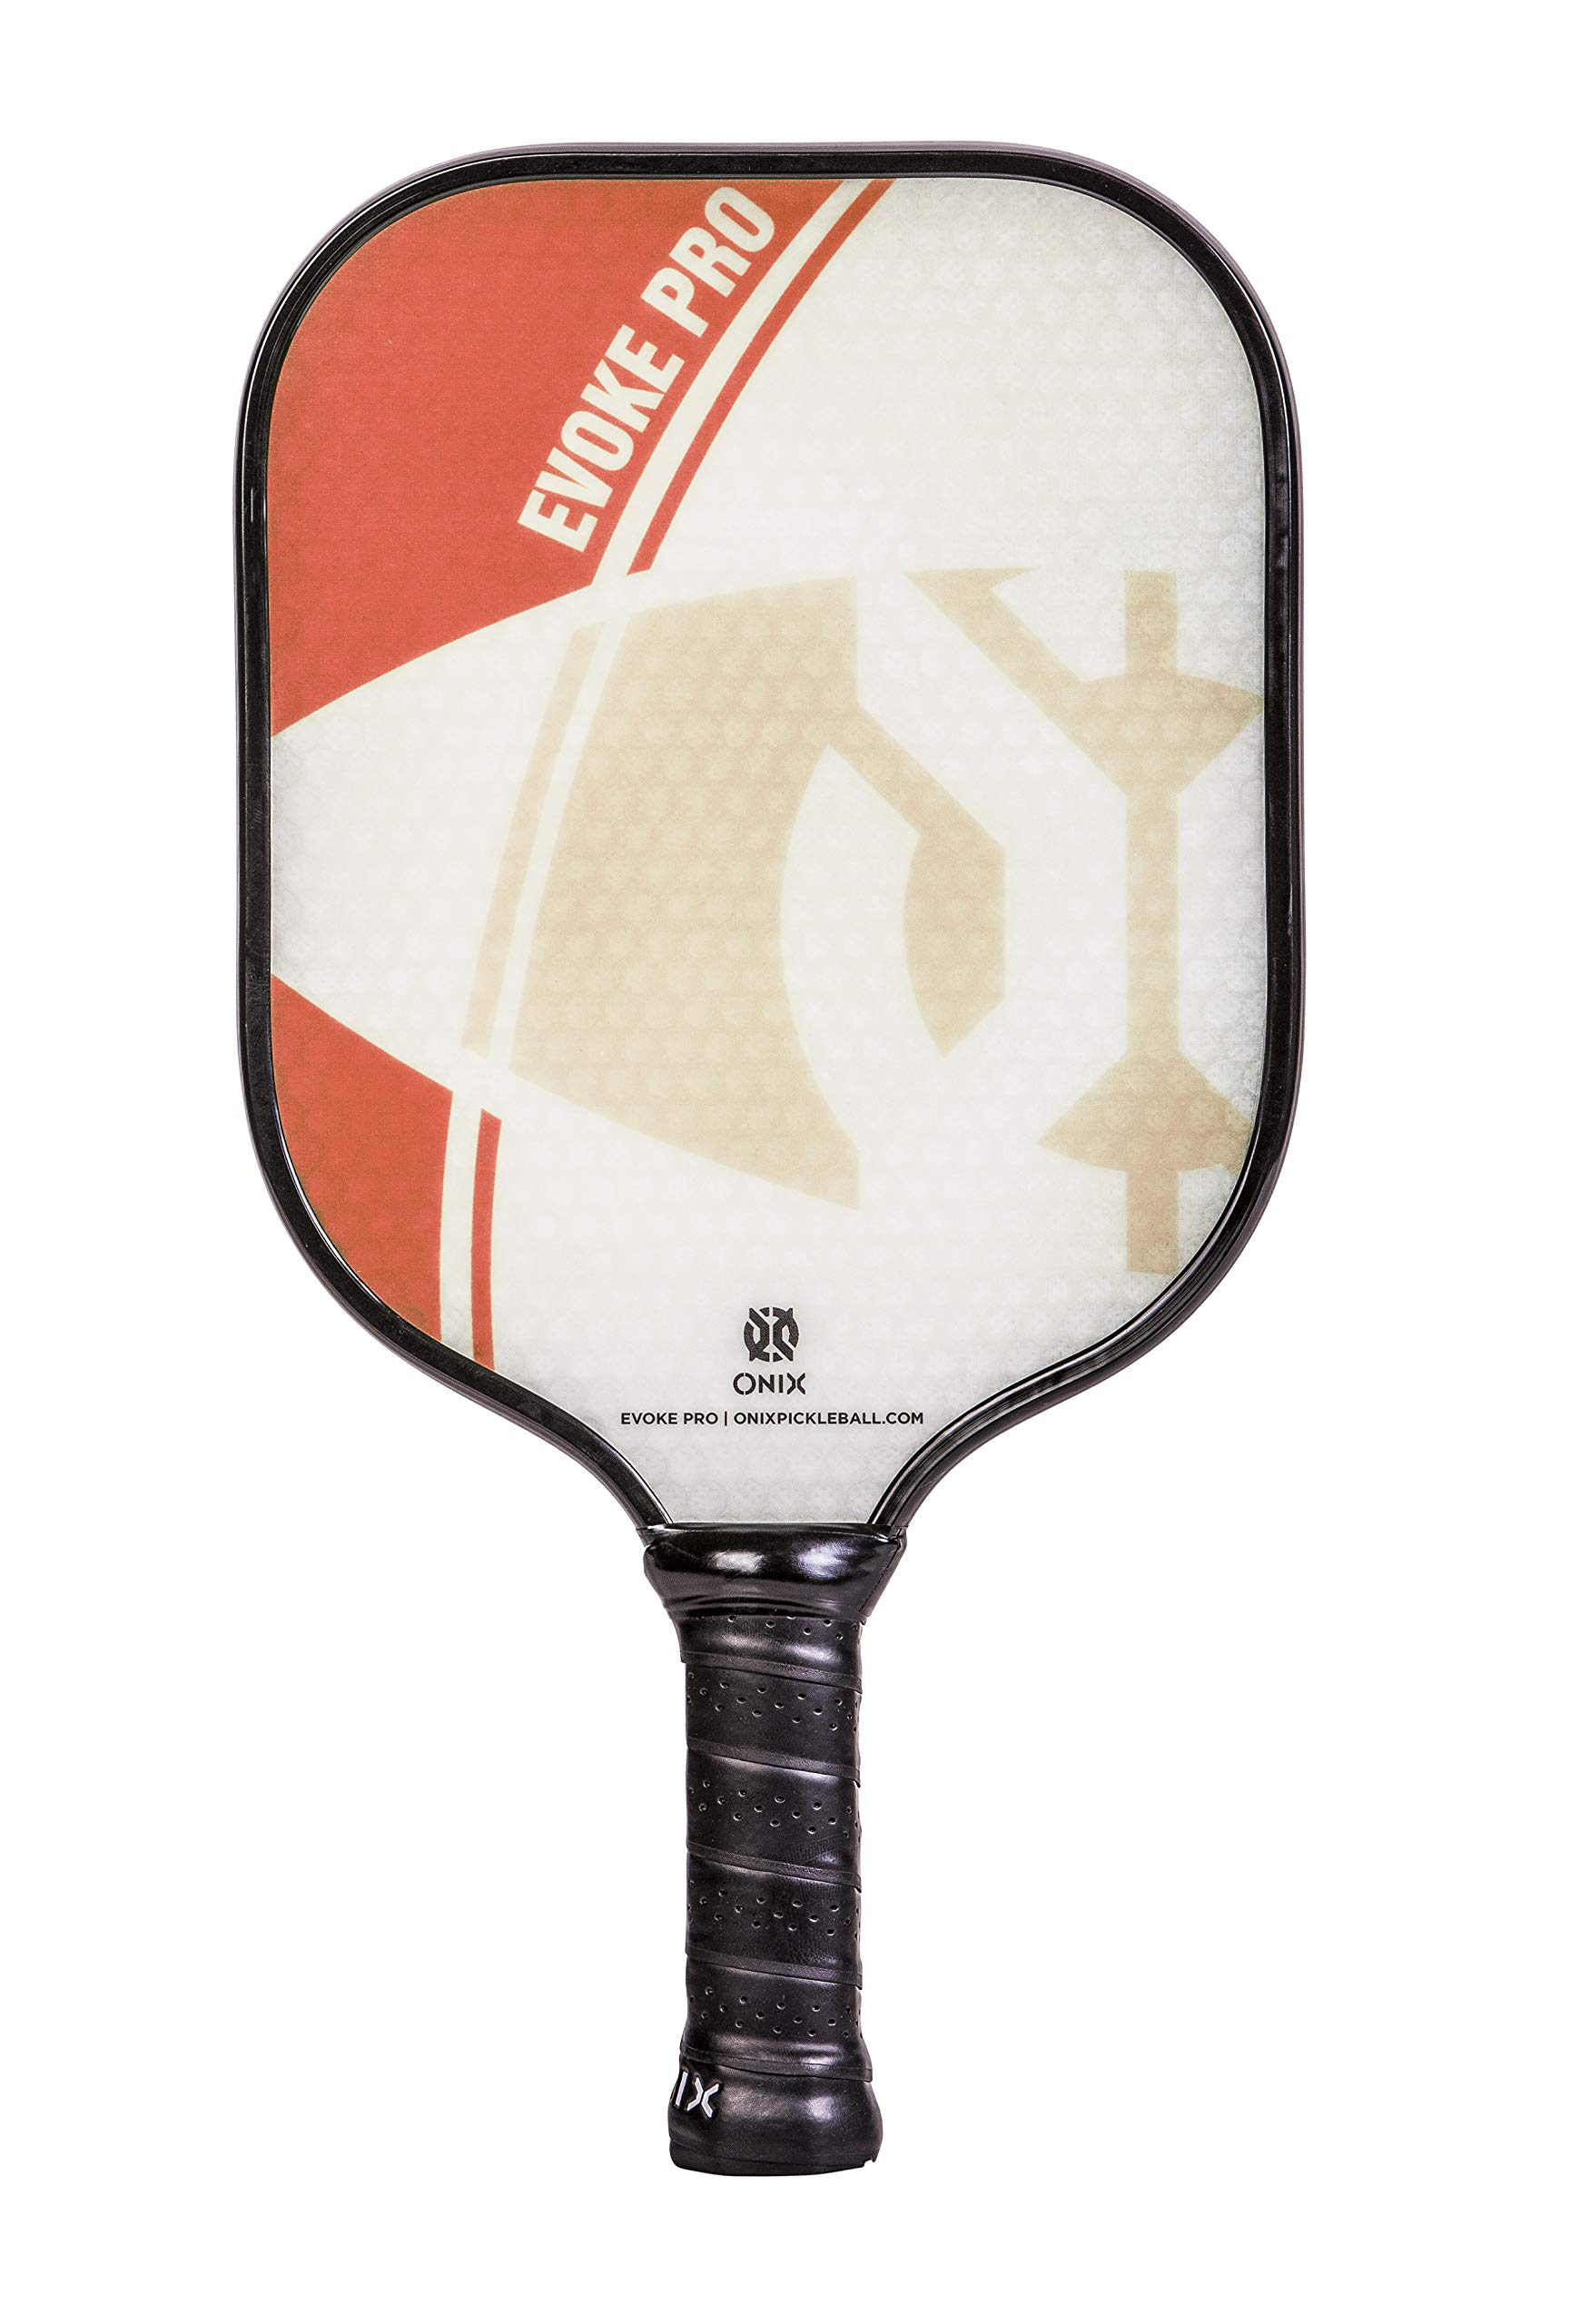 Onix Evoke Series Pickleball Paddles with Composite Fa -GHH1